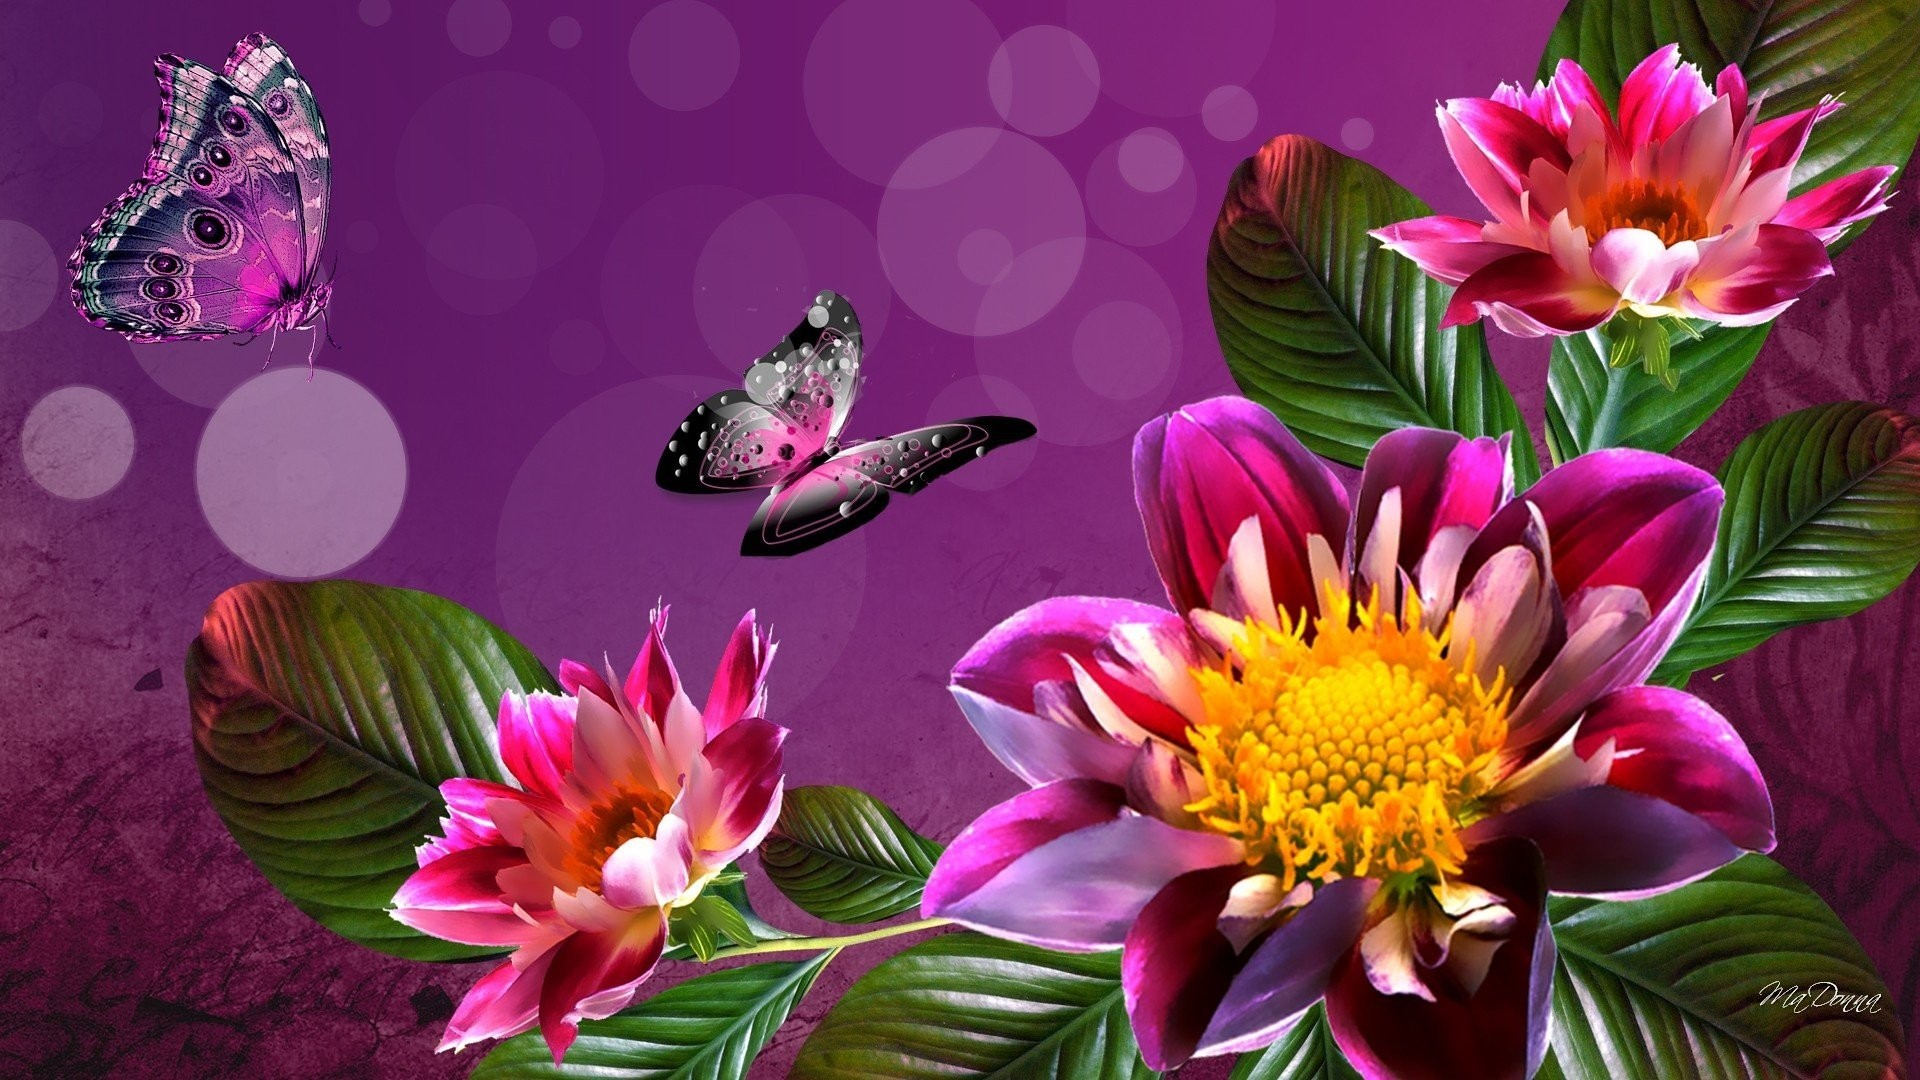 HD Wallpaper For PC Full Screen (75+ Images